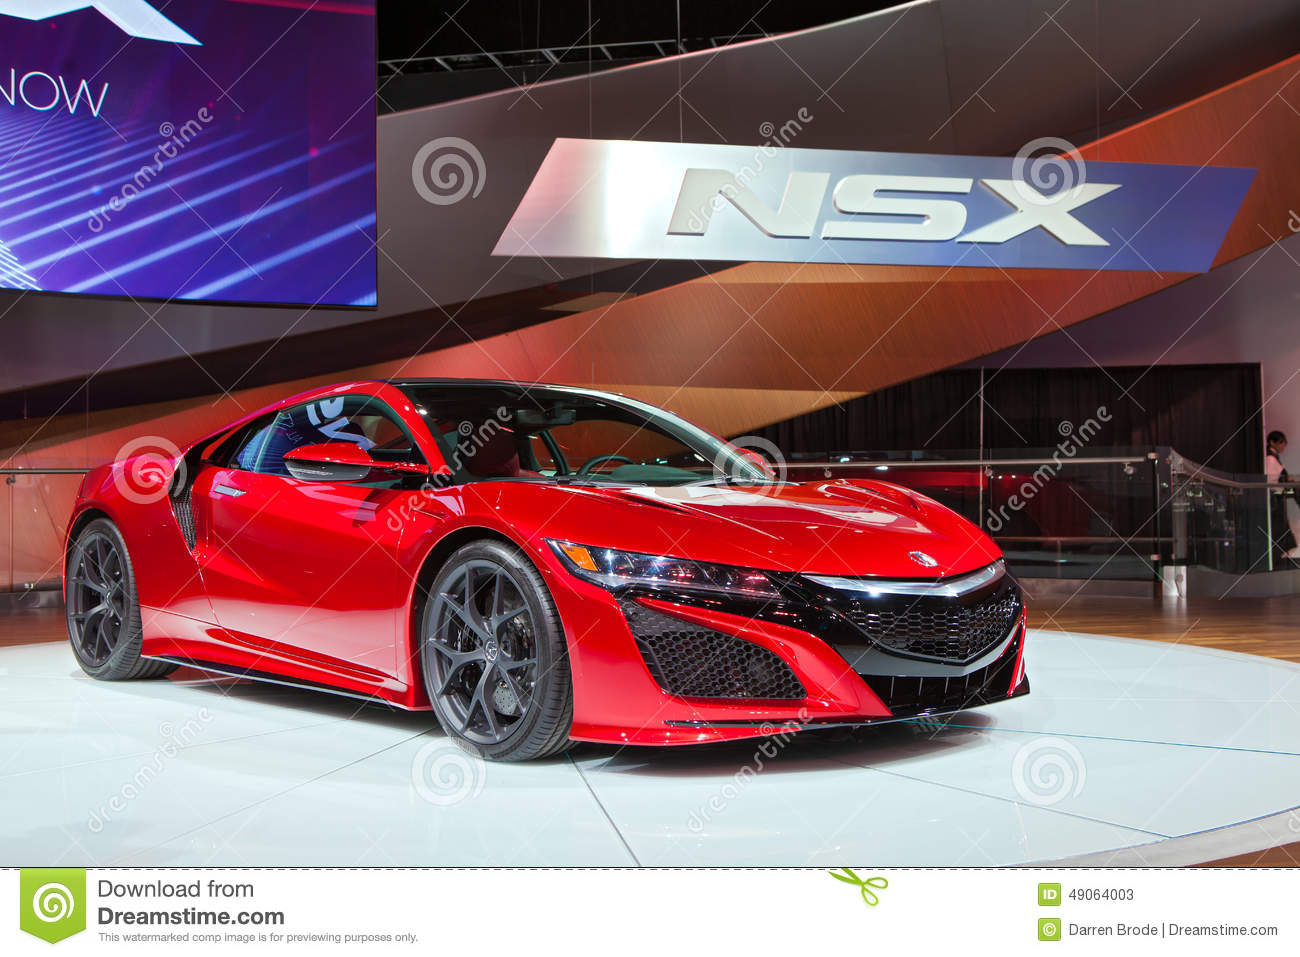 salon de l 39 auto 2016 d 39 acura nsx detroit photo stock ditorial image du affichage am ricain. Black Bedroom Furniture Sets. Home Design Ideas